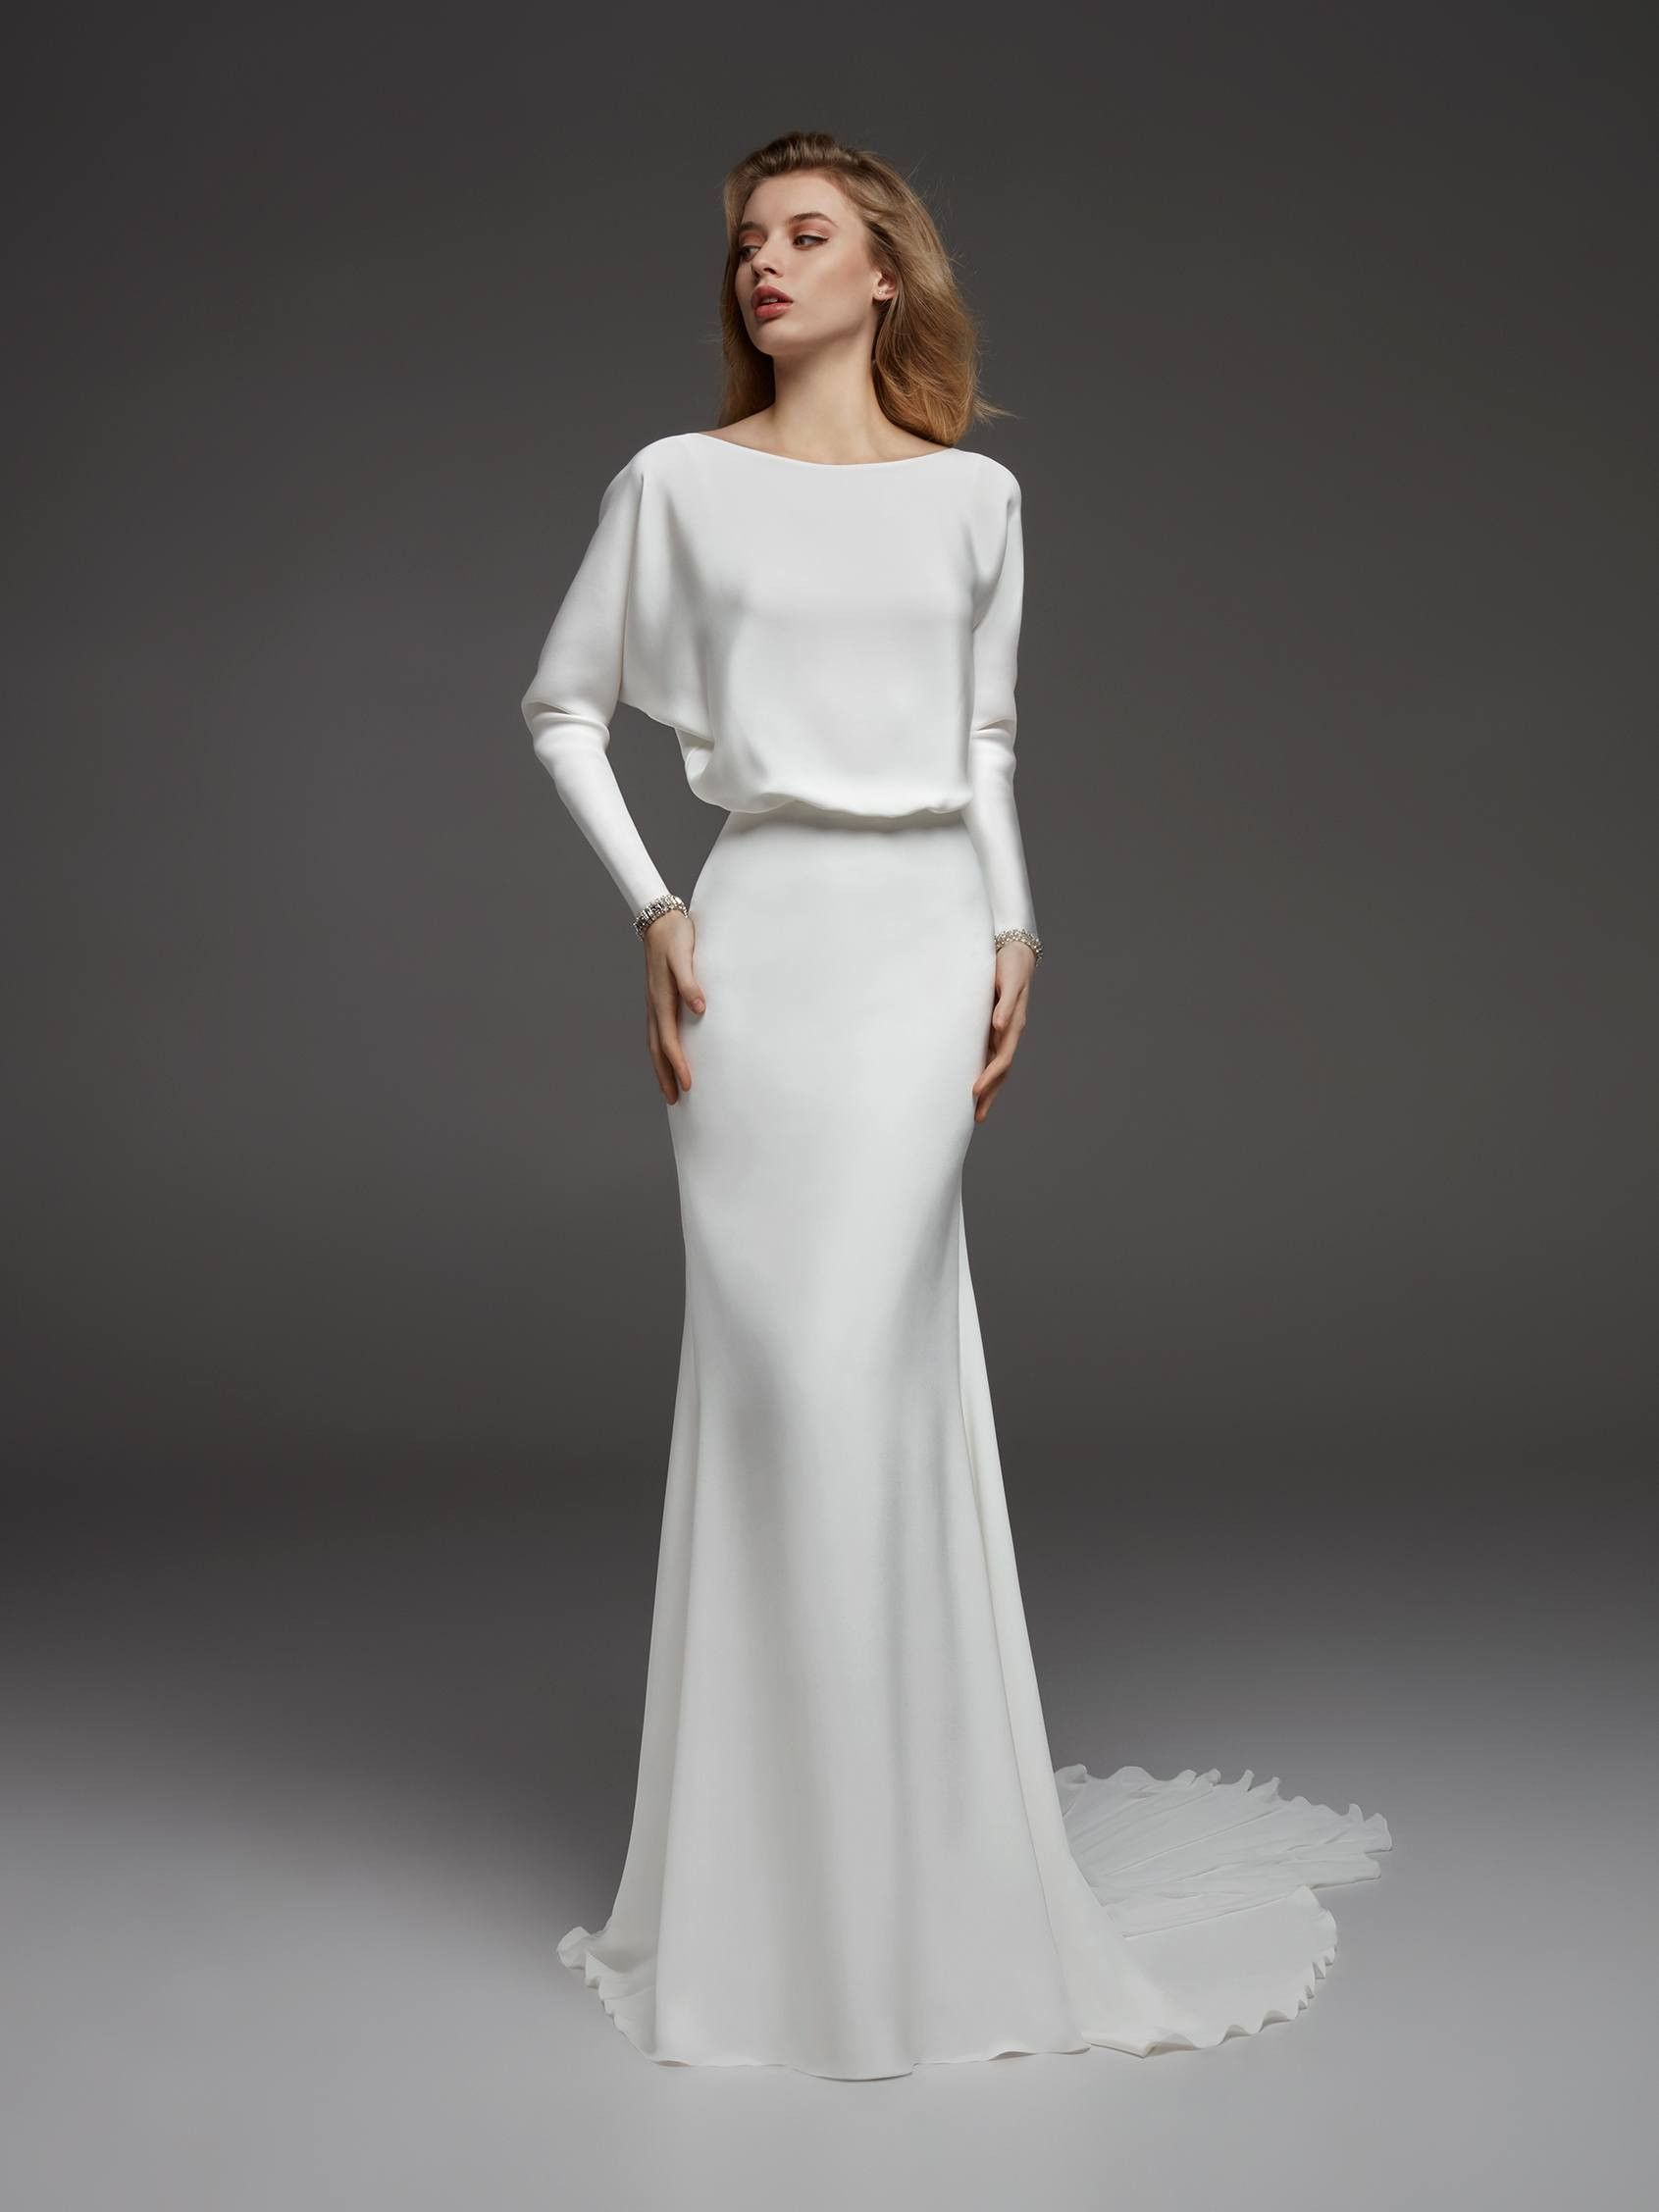 76d46139bc3 19 Wedding Dresses for the Minimalist Bride (WhoWhatWear.com ...